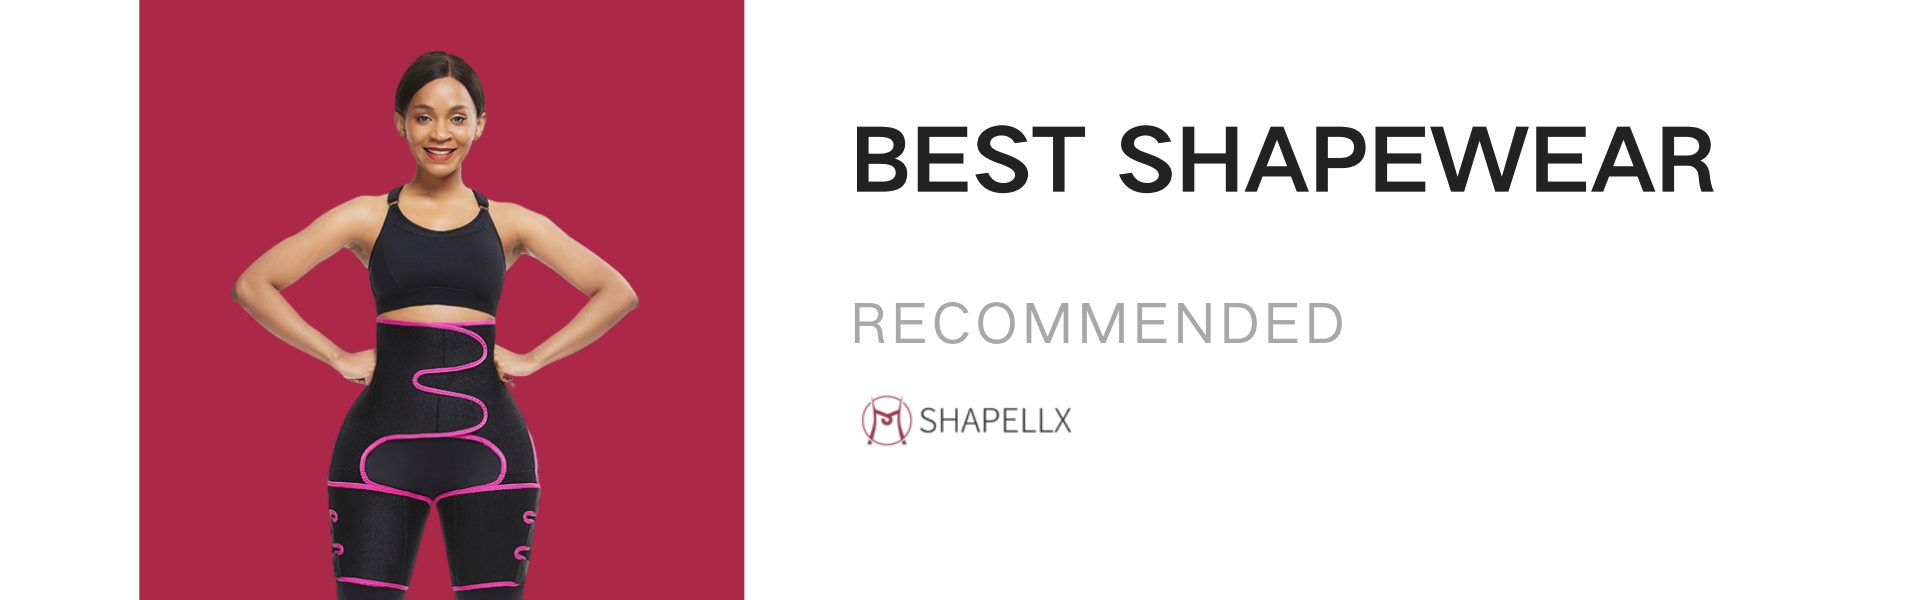 Top Recommended Shapewear 2020